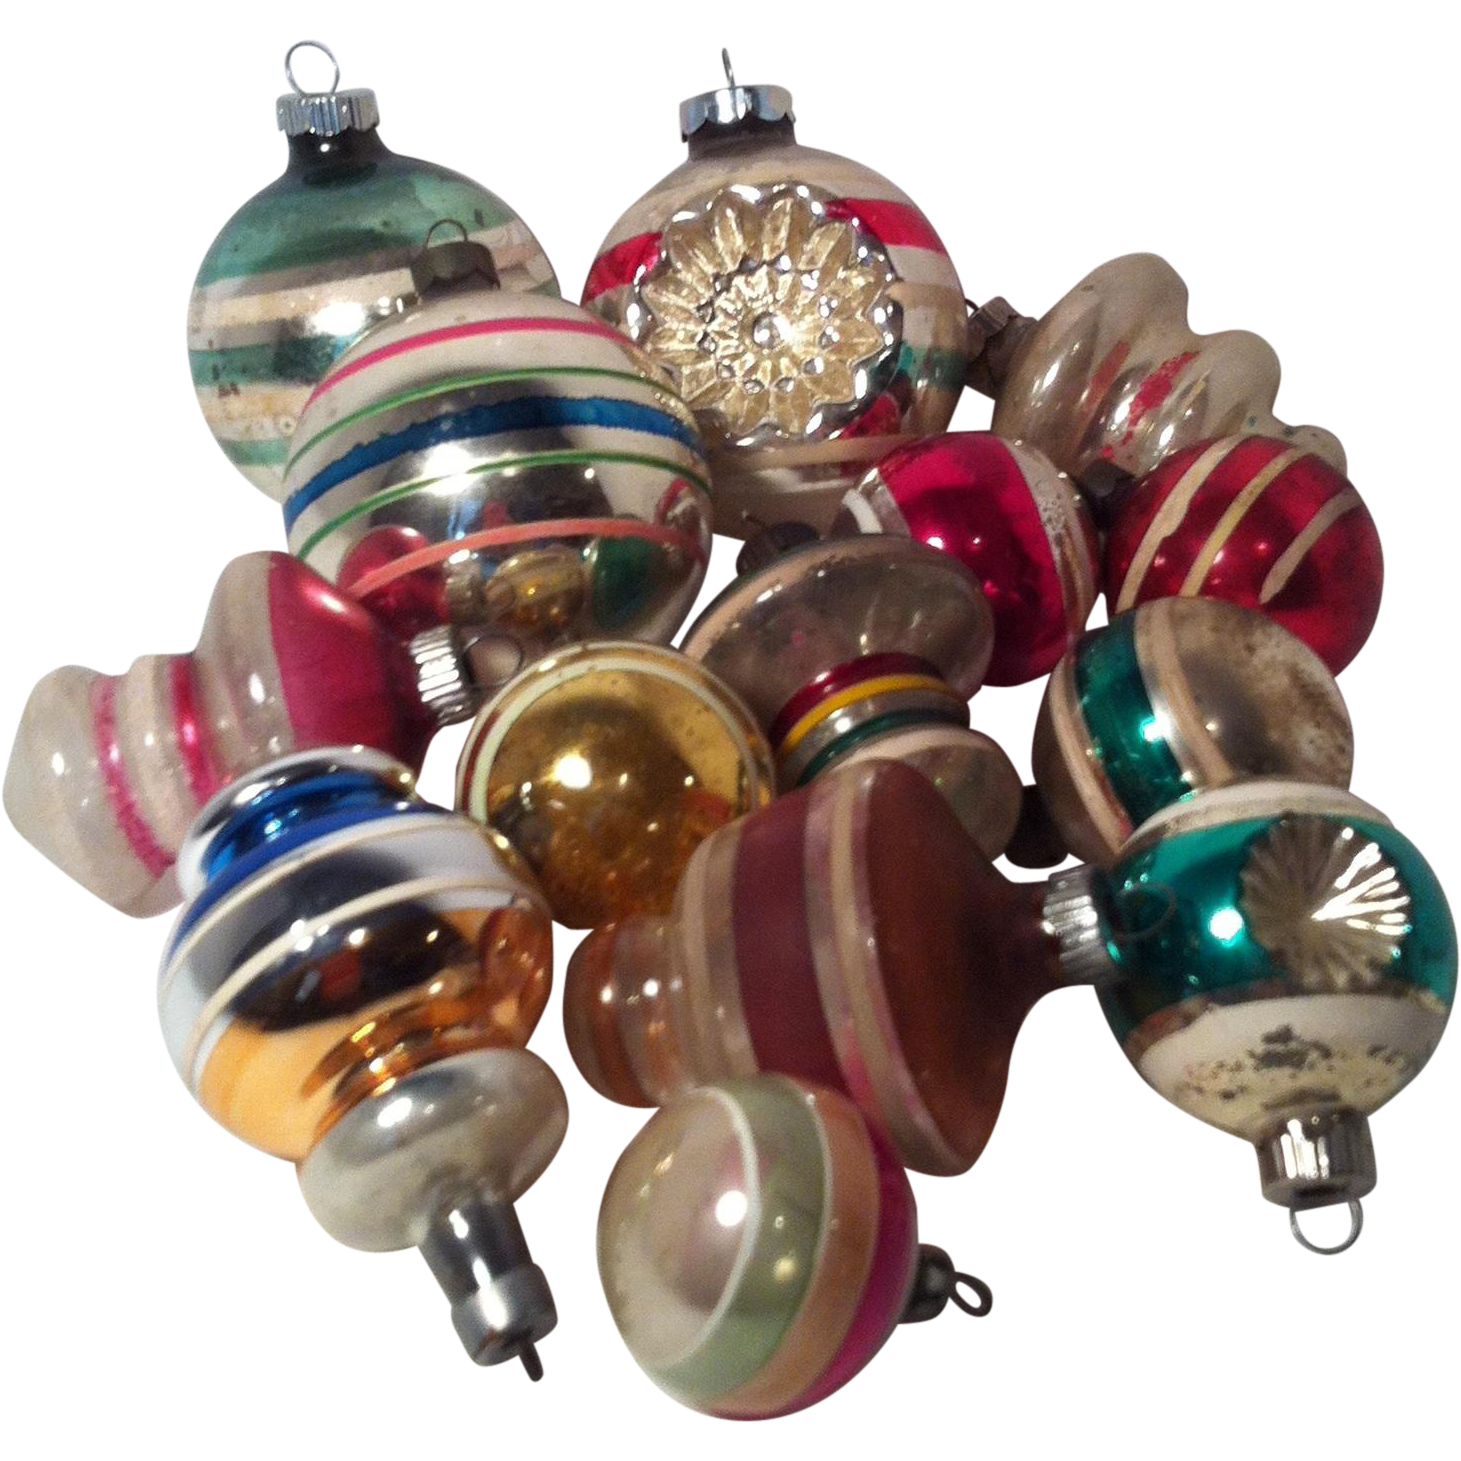 Large round christmas ornaments - 14 Vintage Striped Indents Lanterns Round Christmas Ornaments